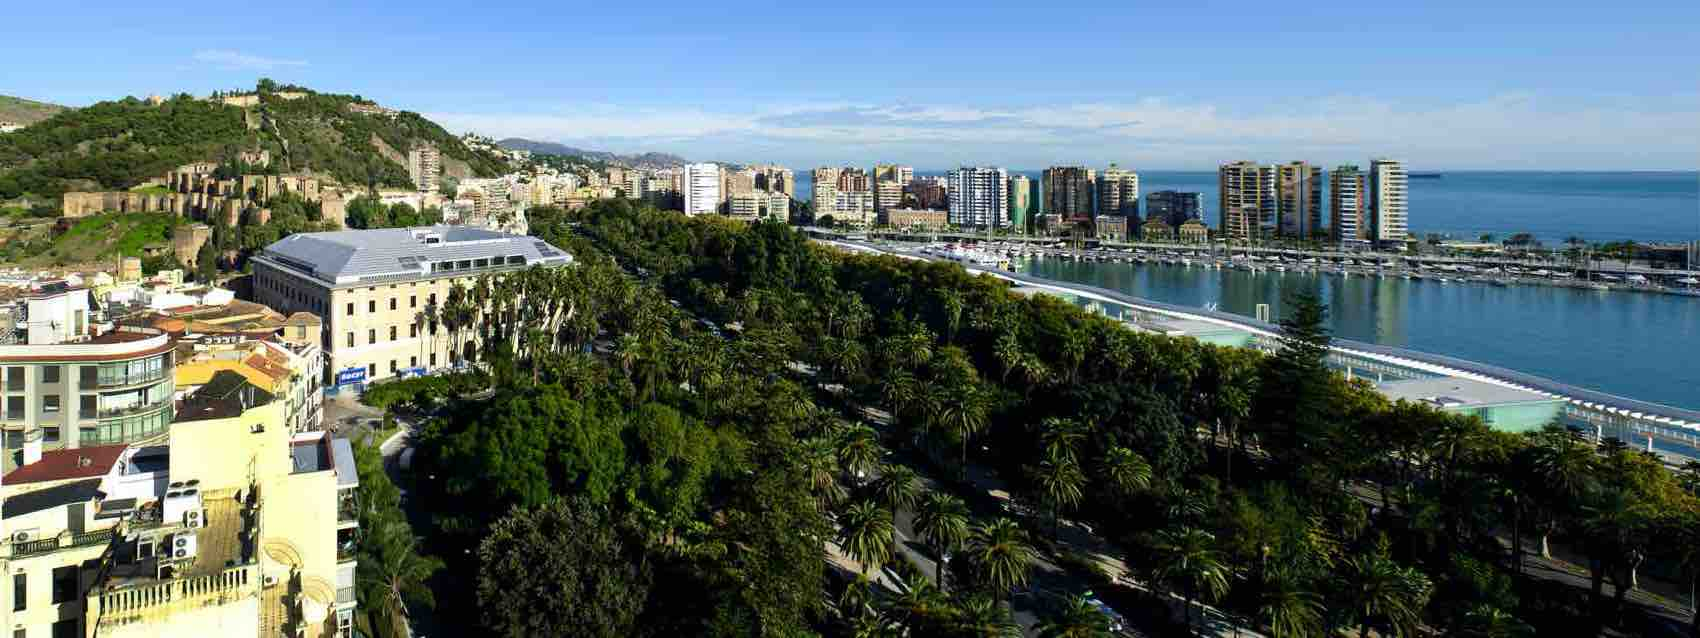 Scenery of Malaga. With the Malaga Park and the harbour as part of the city center